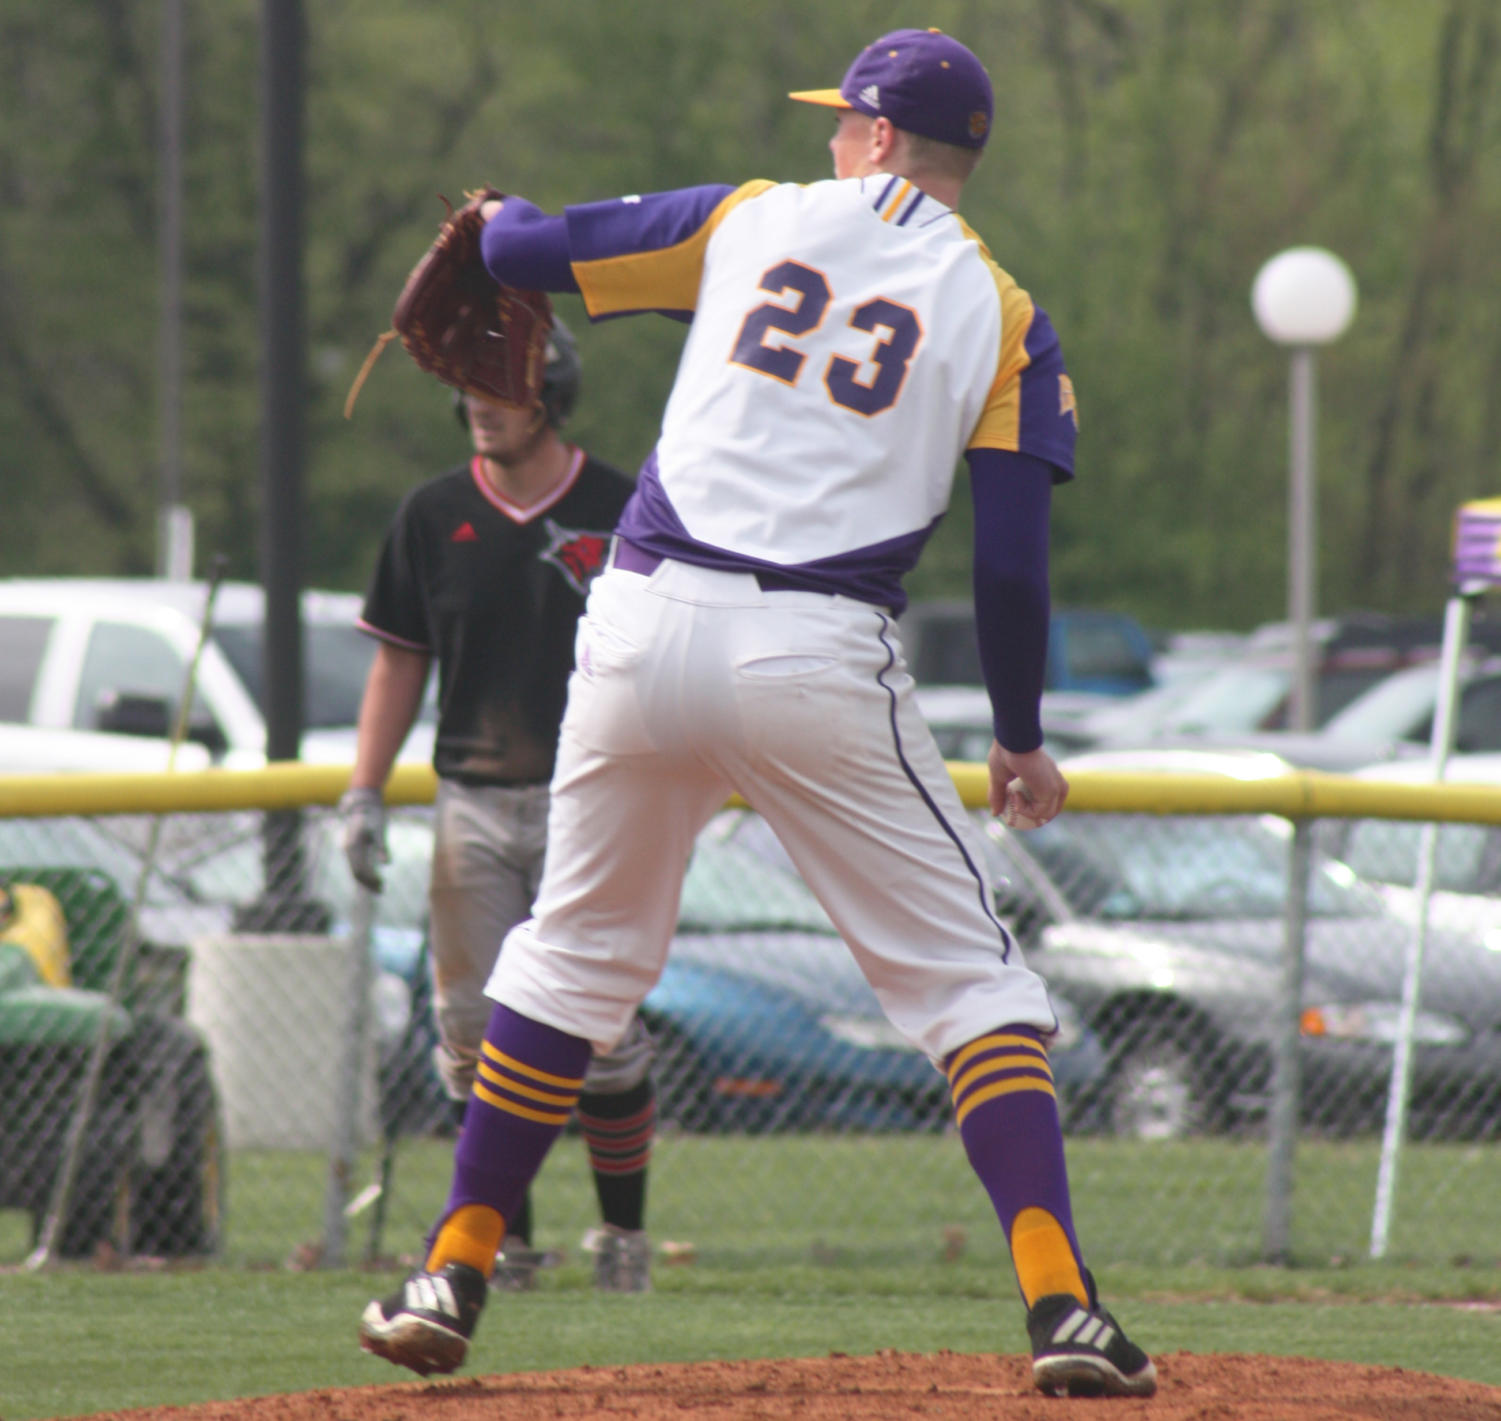 Ian Koch on the mound for the Purple and Gold.